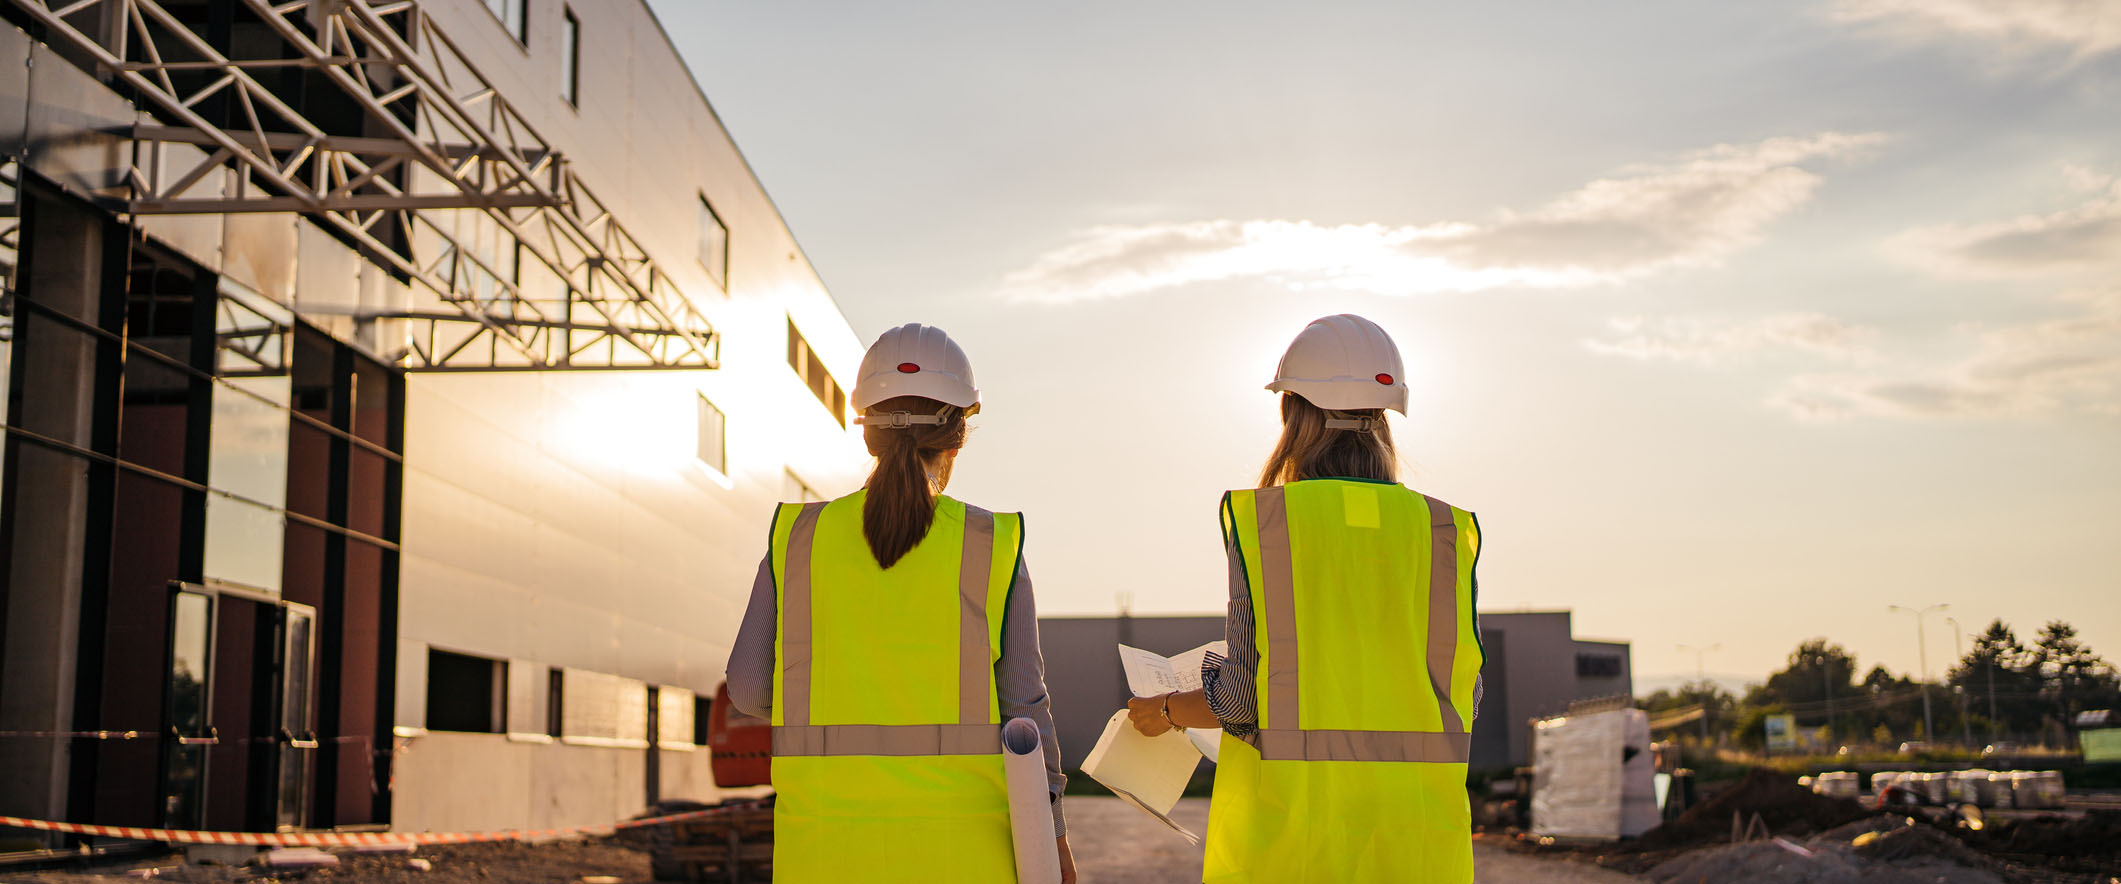 Female construction engineers with helmet walking through the construction site and making plans for their project.